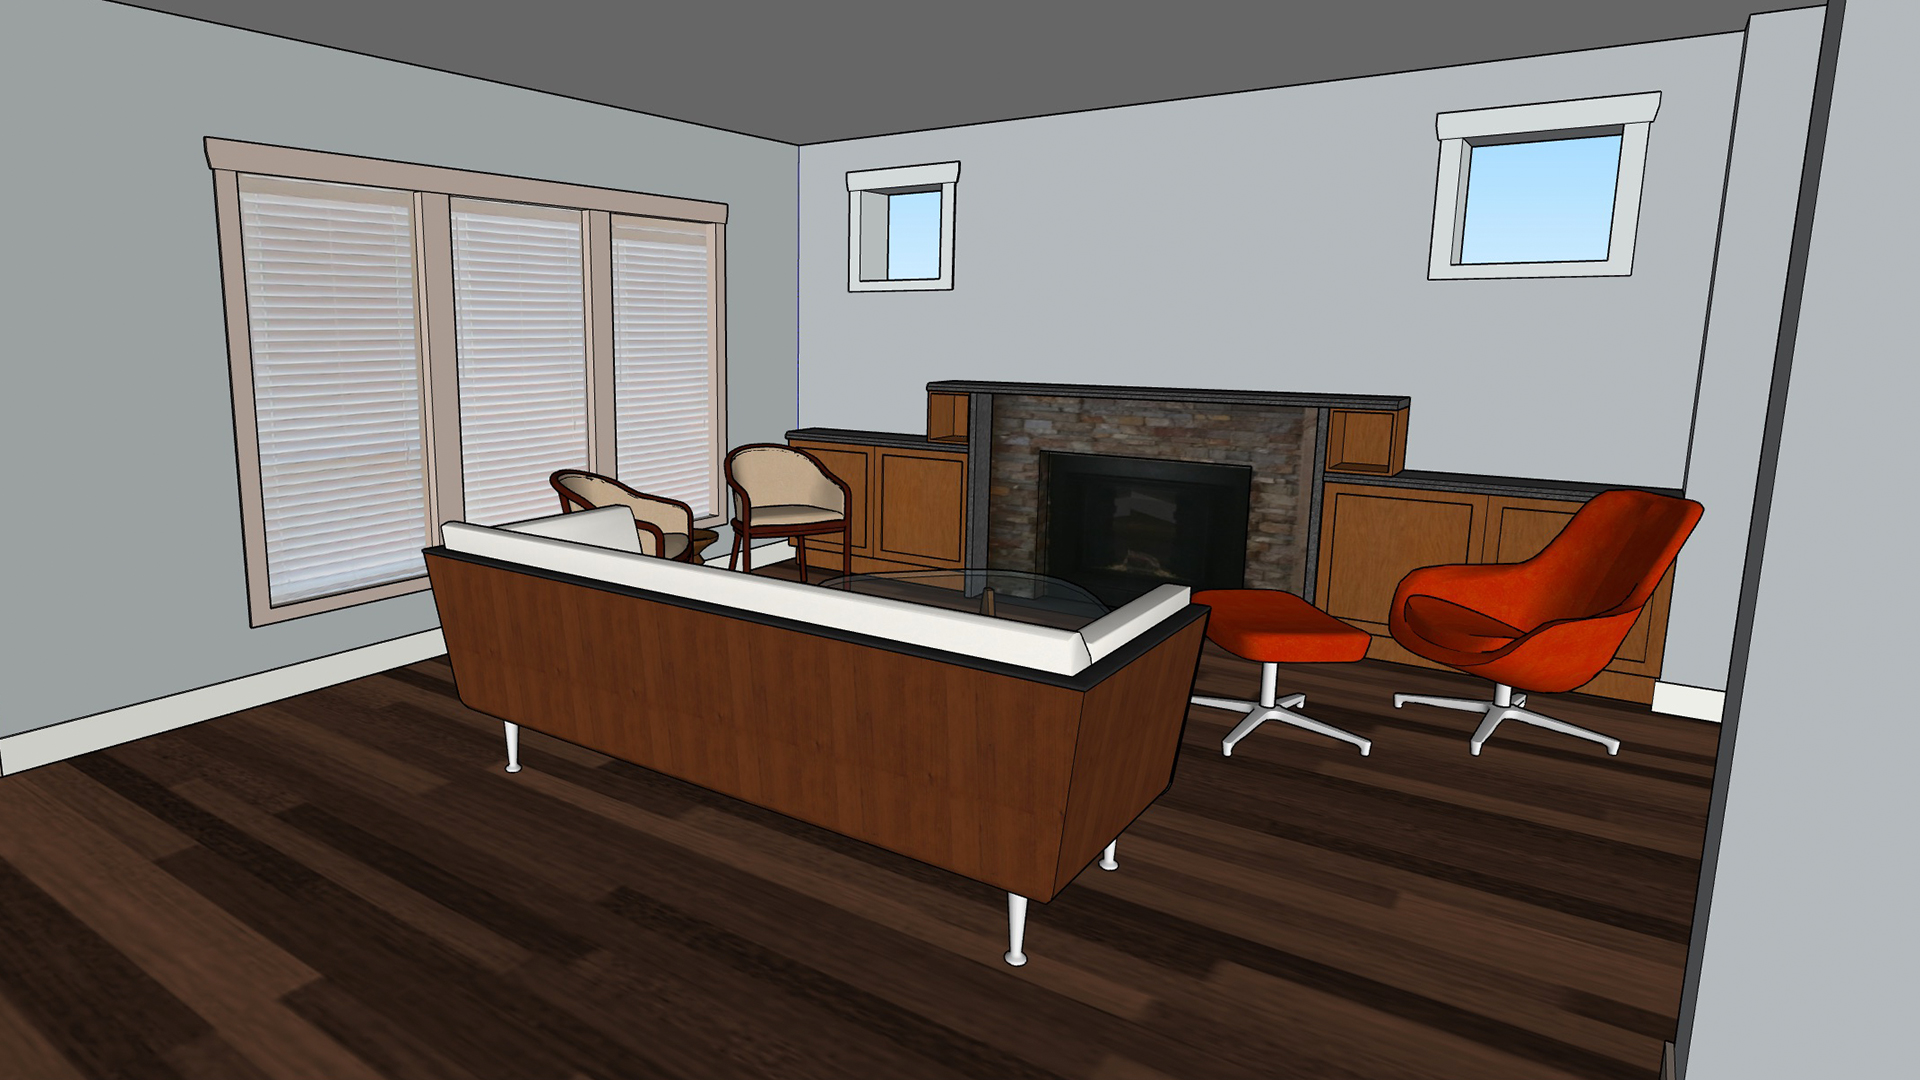 Sketchup Modeling Interiors From Photos